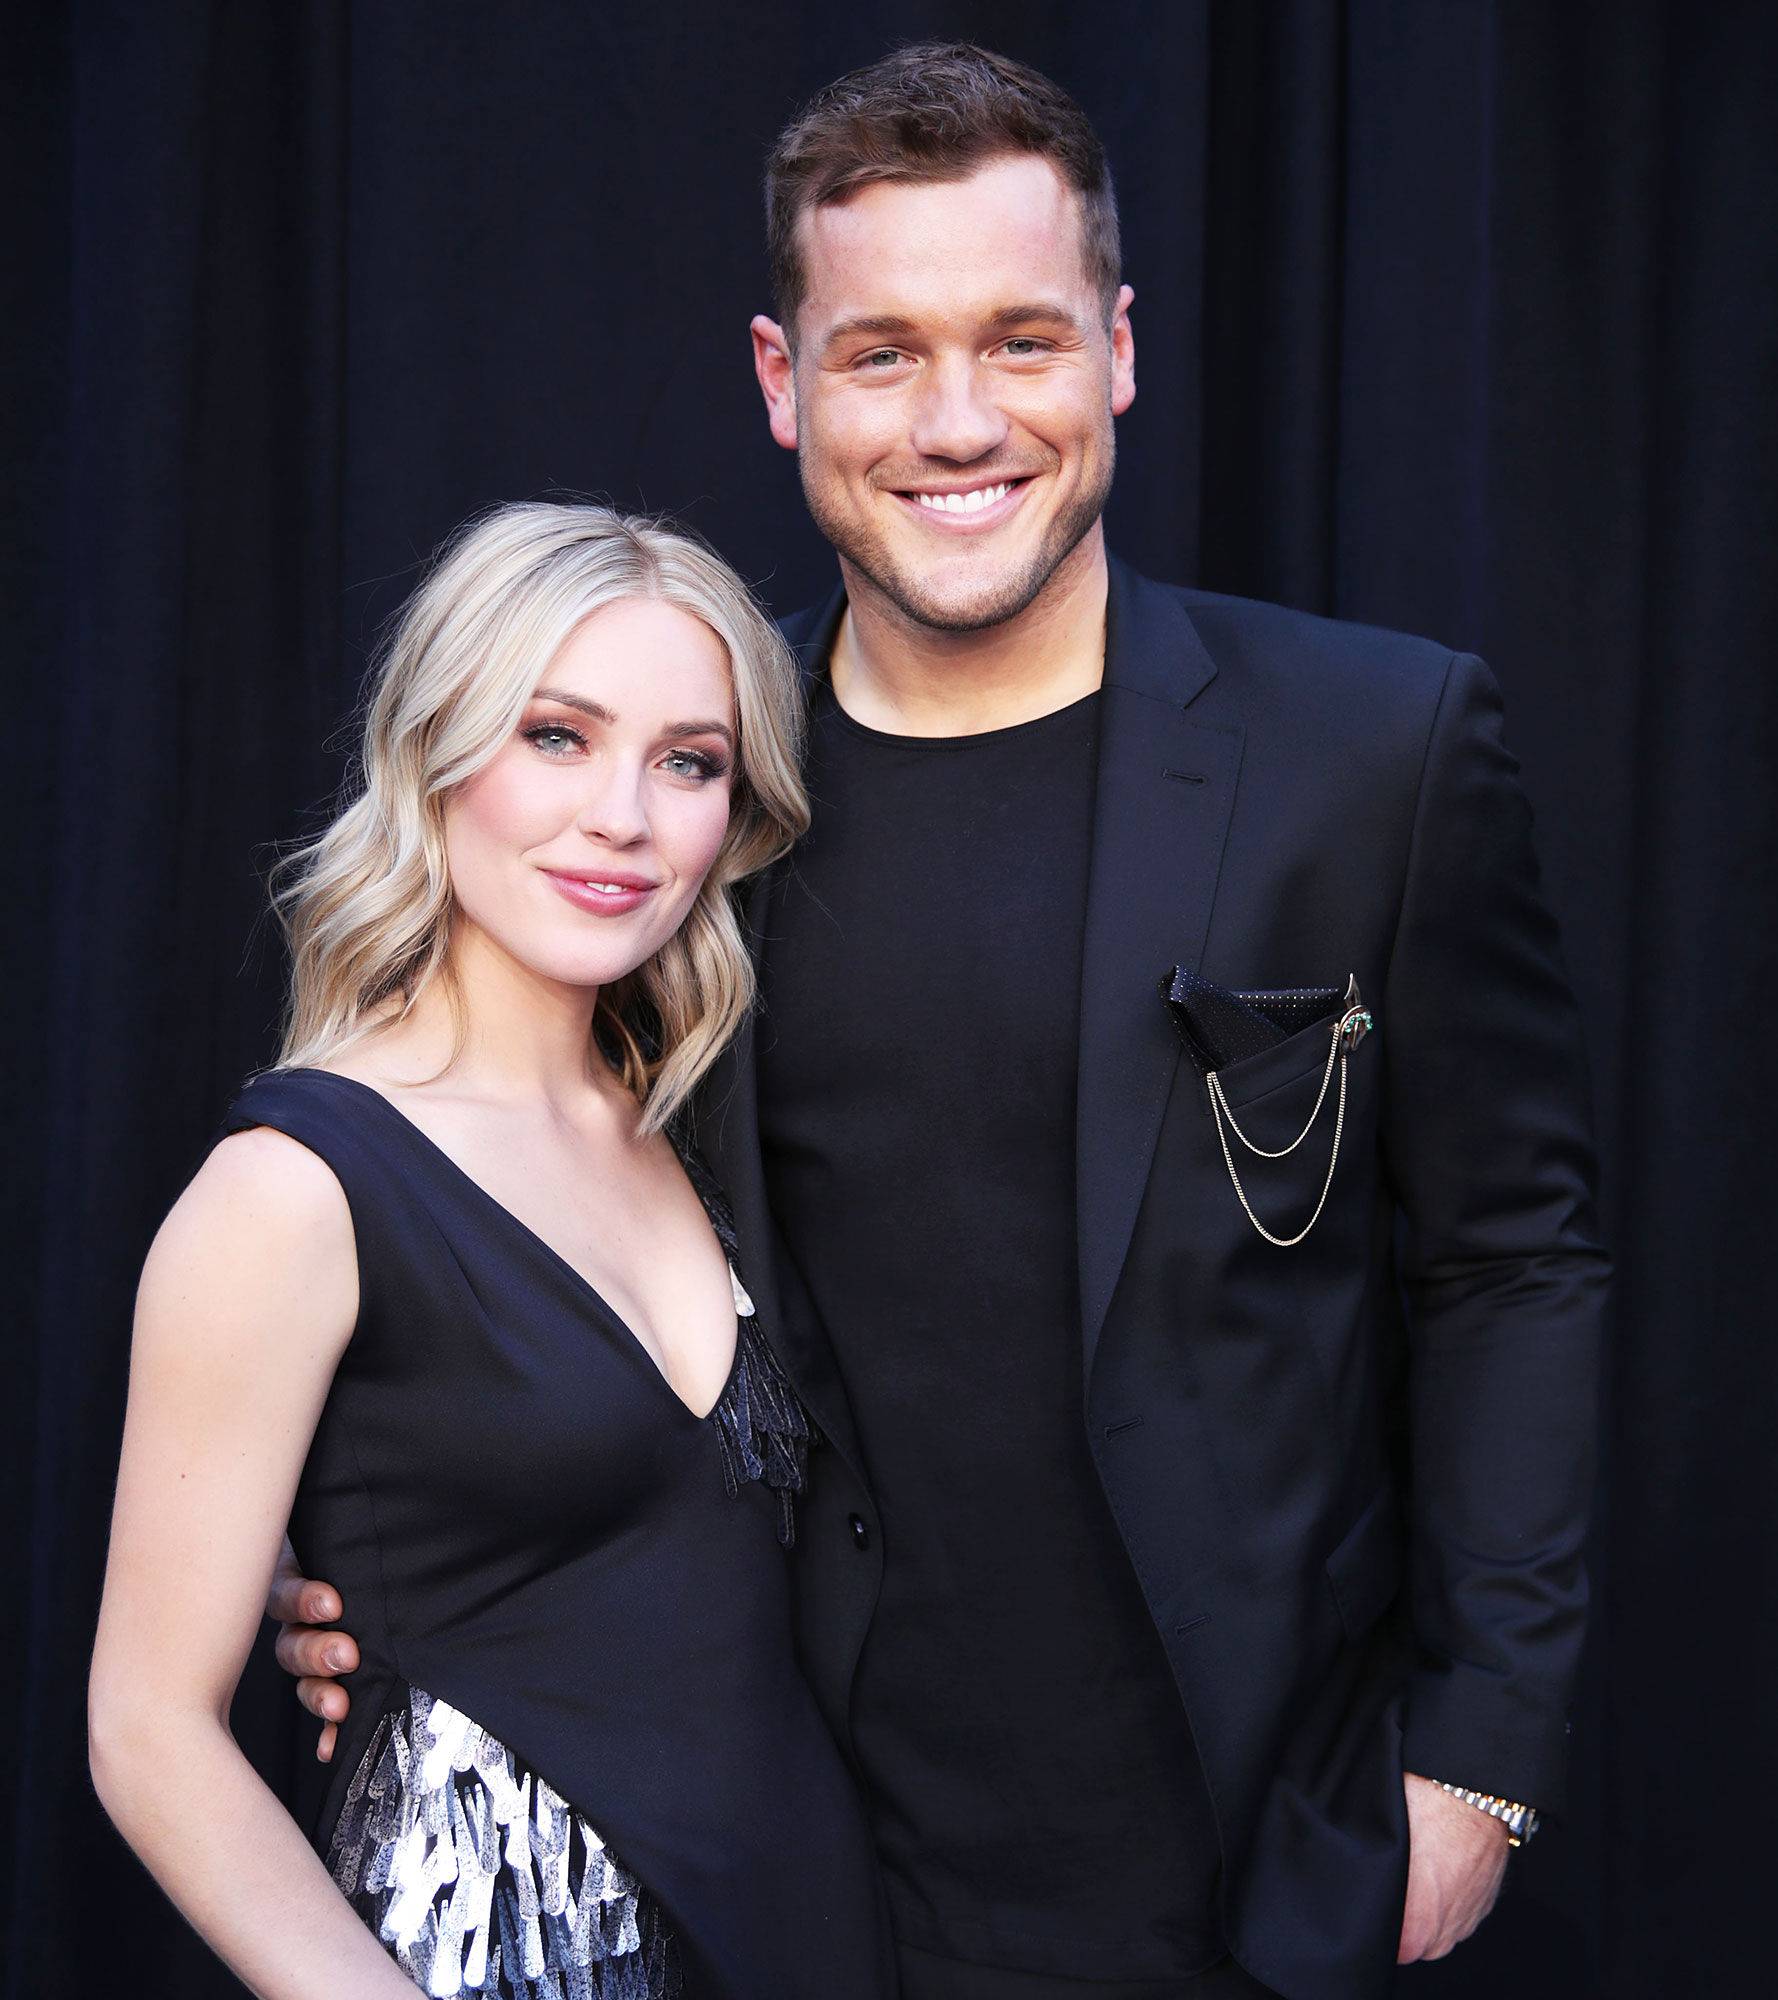 Caelynn Miller-Keyes Apartment Cassie Randolph Colton Underwood - Cassie Randolph and Colton Underwood attend the 54th Academy of Country Music Awards at MGM Grand Garden Arena in Las Vegas on April 7, 2019.